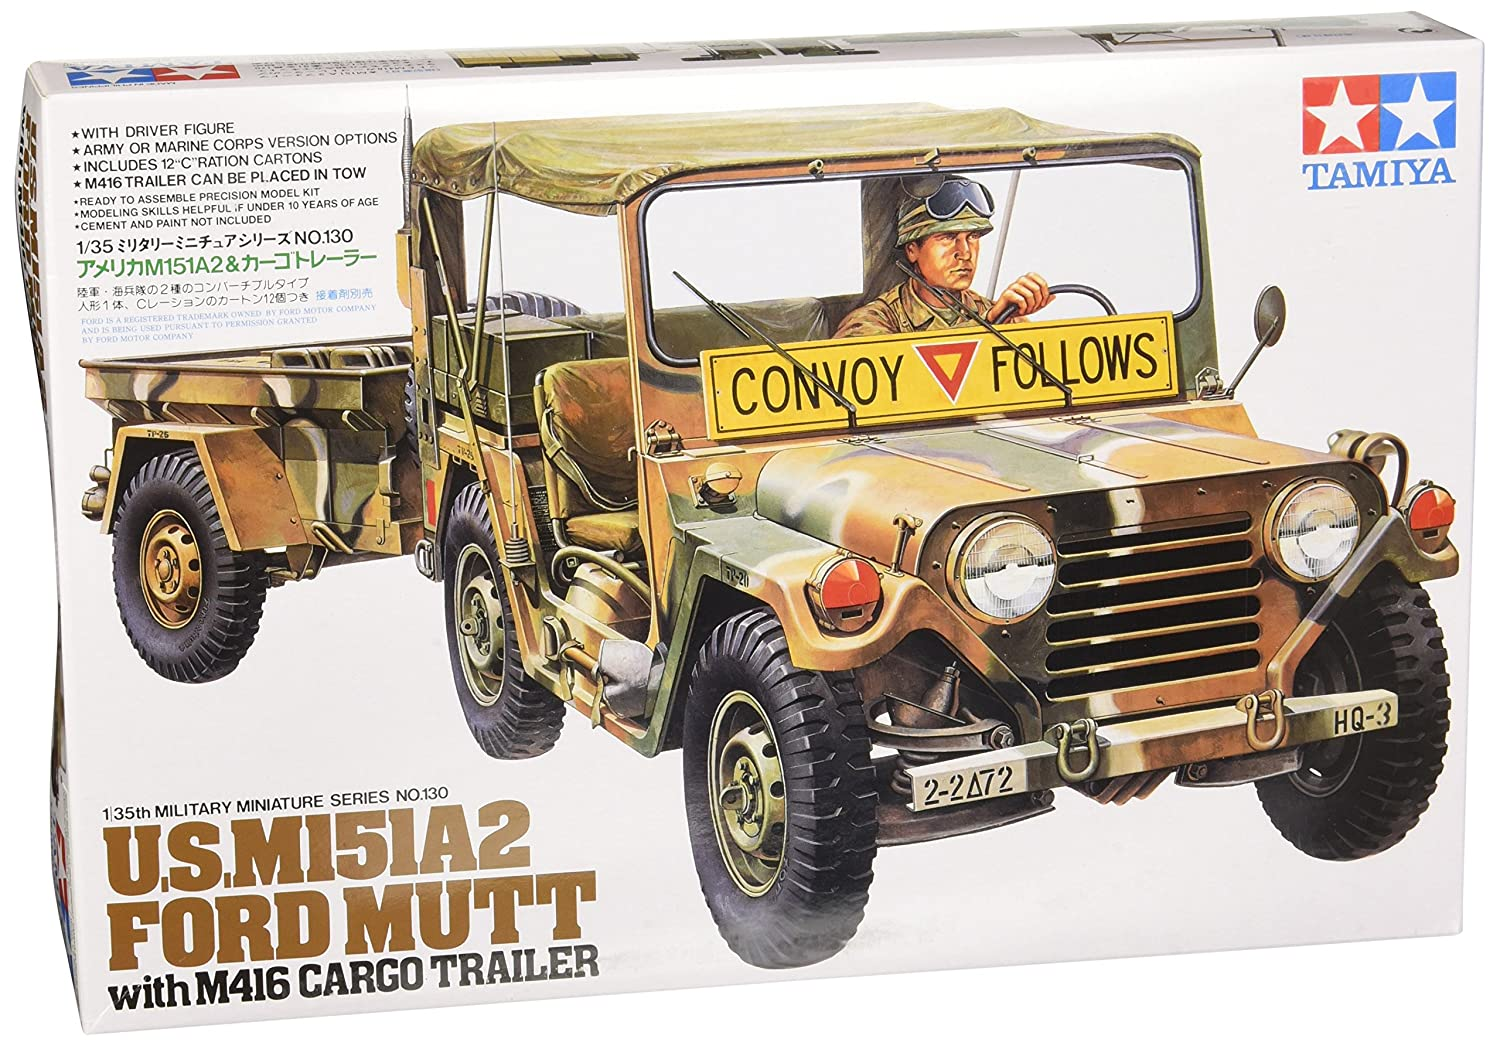 Tamiya 300035130 – 1: 35 US M151 A2 Ford Mutt with Pendant (1)